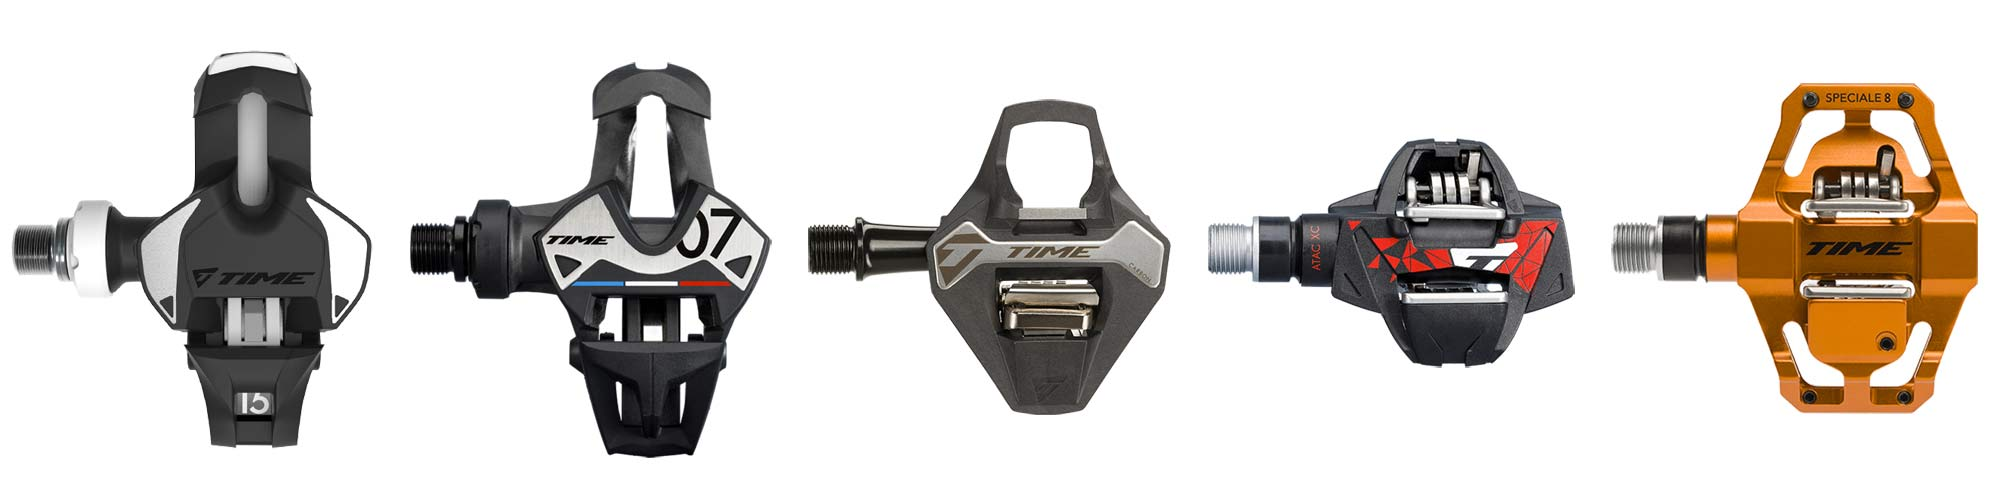 SRAM buys TIME pedals, completes bike component portfolio,all pedals